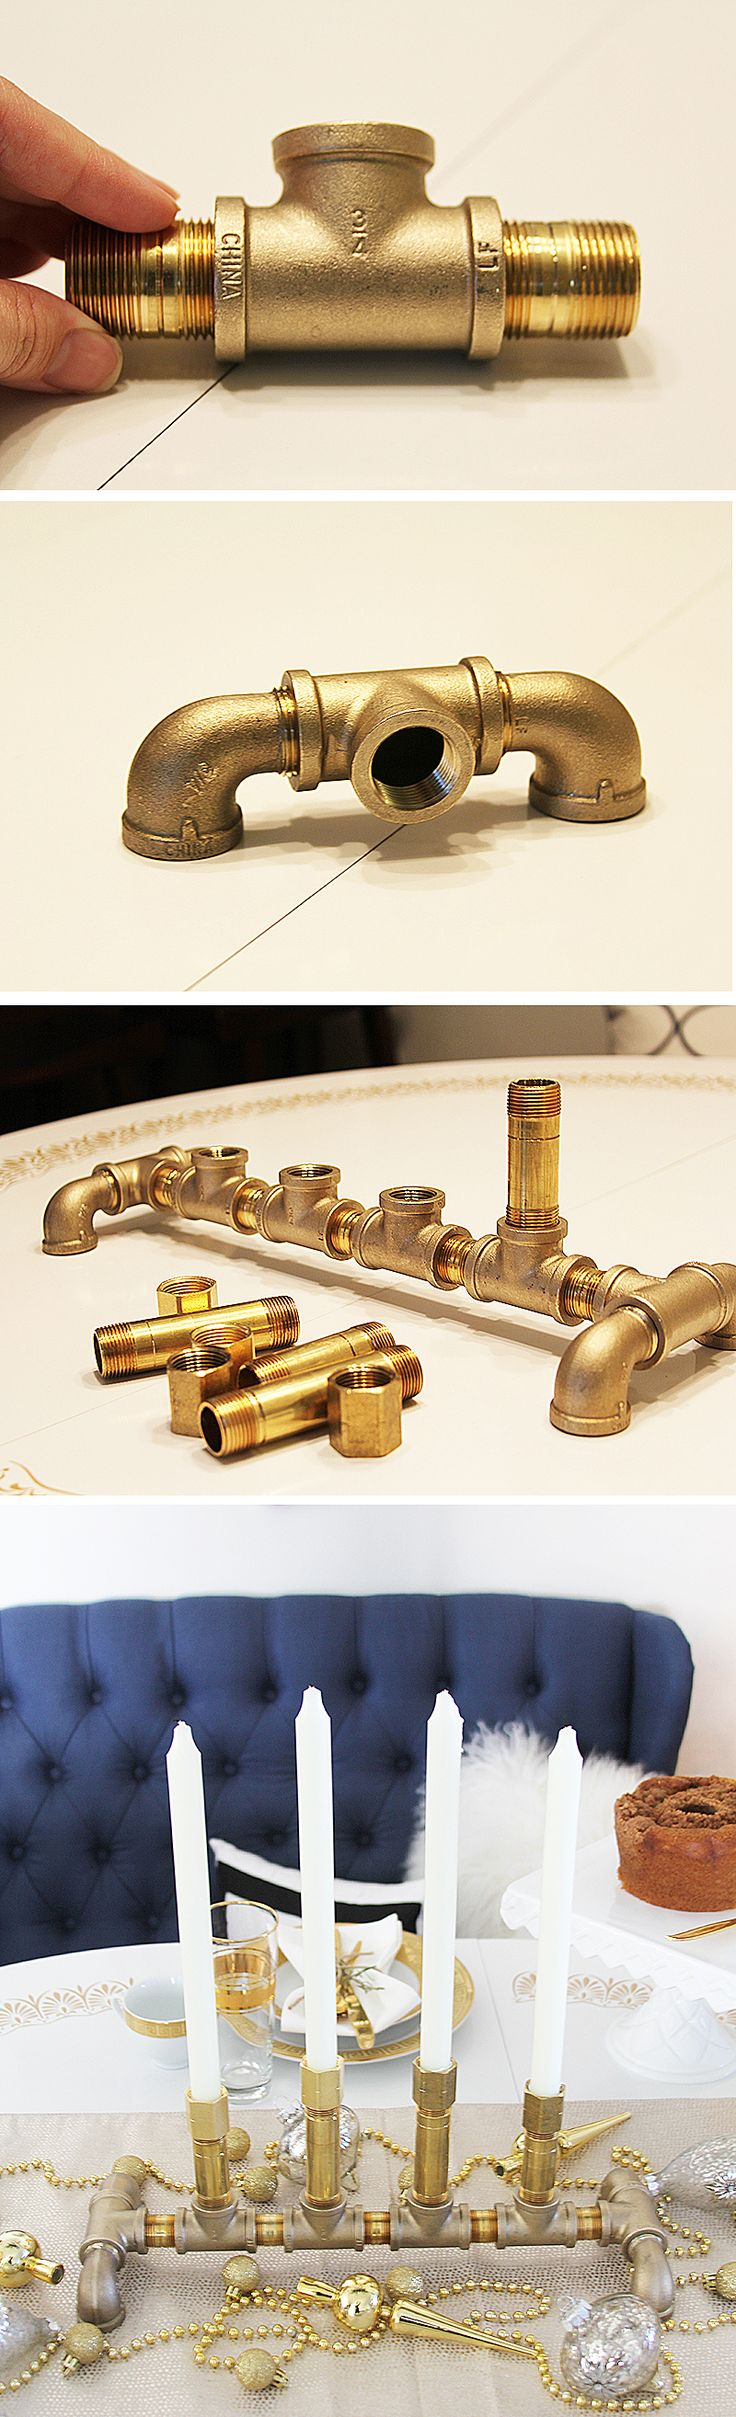 Best brass pipe ideas on pinterest shelving